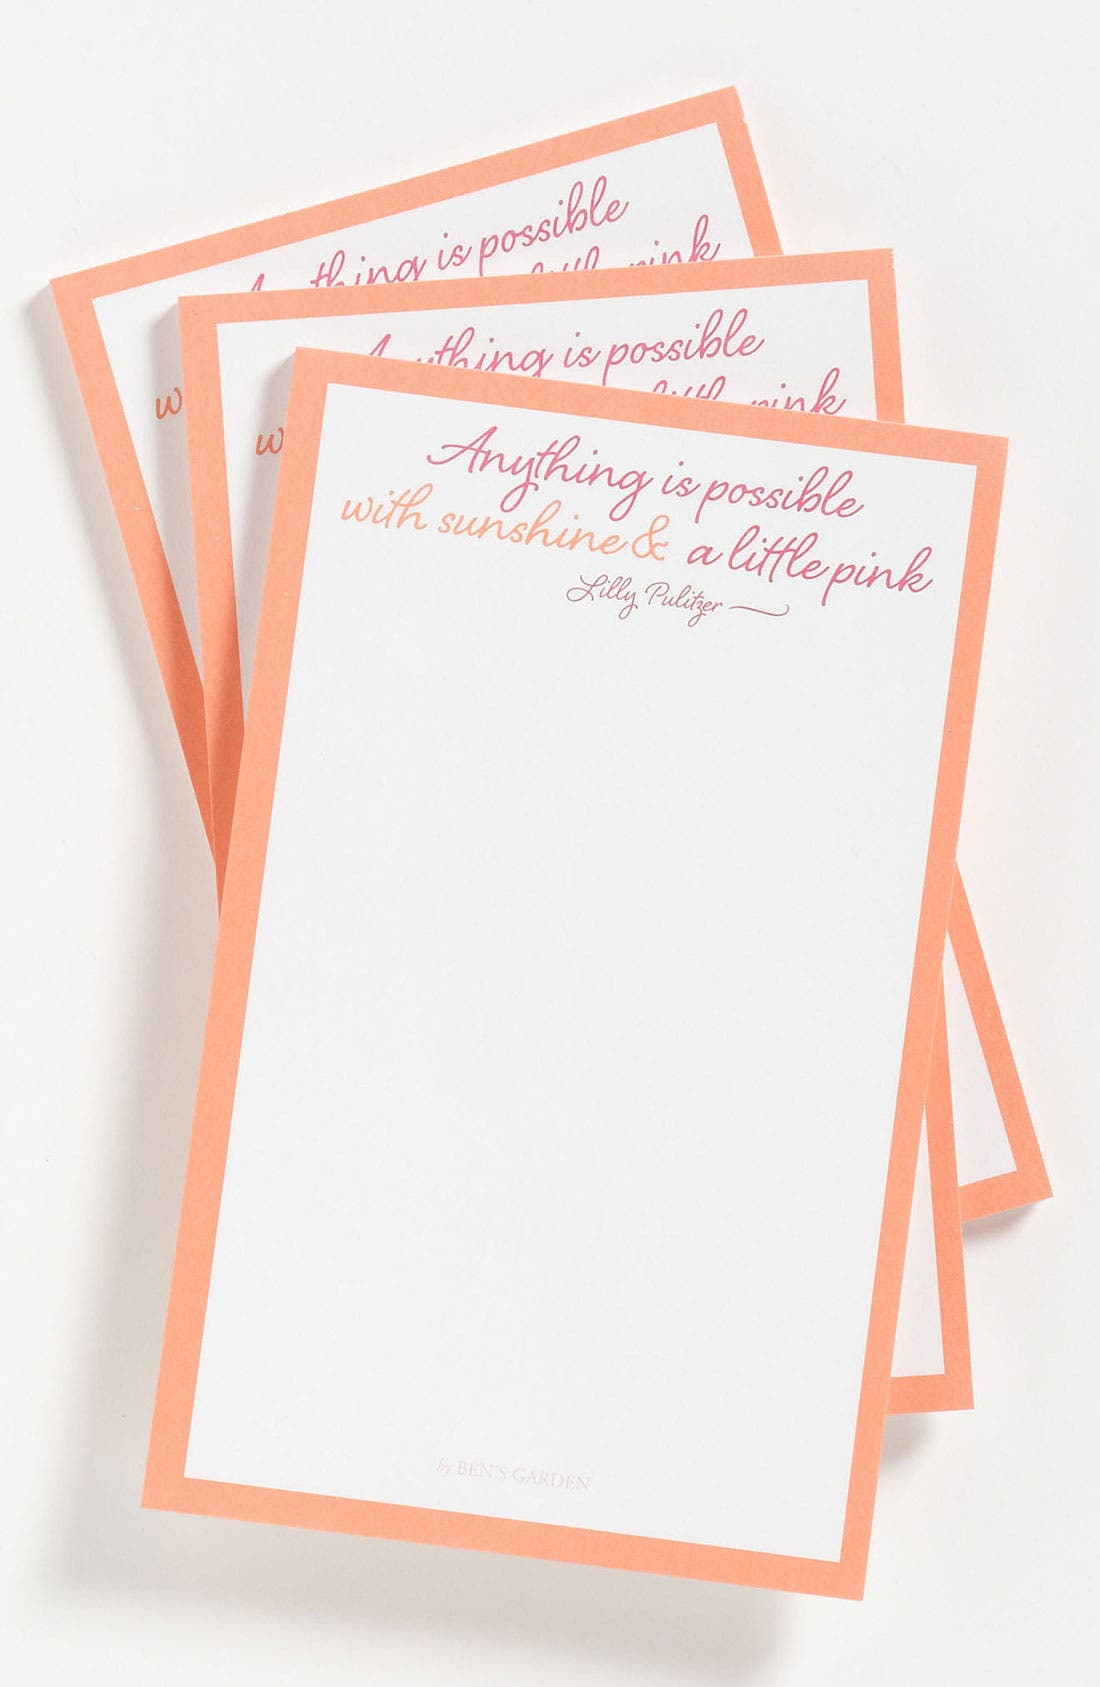 Alternate Image 1 Selected - Ben's Garden 'Anything Is Possible' Notepads (3-Pack)